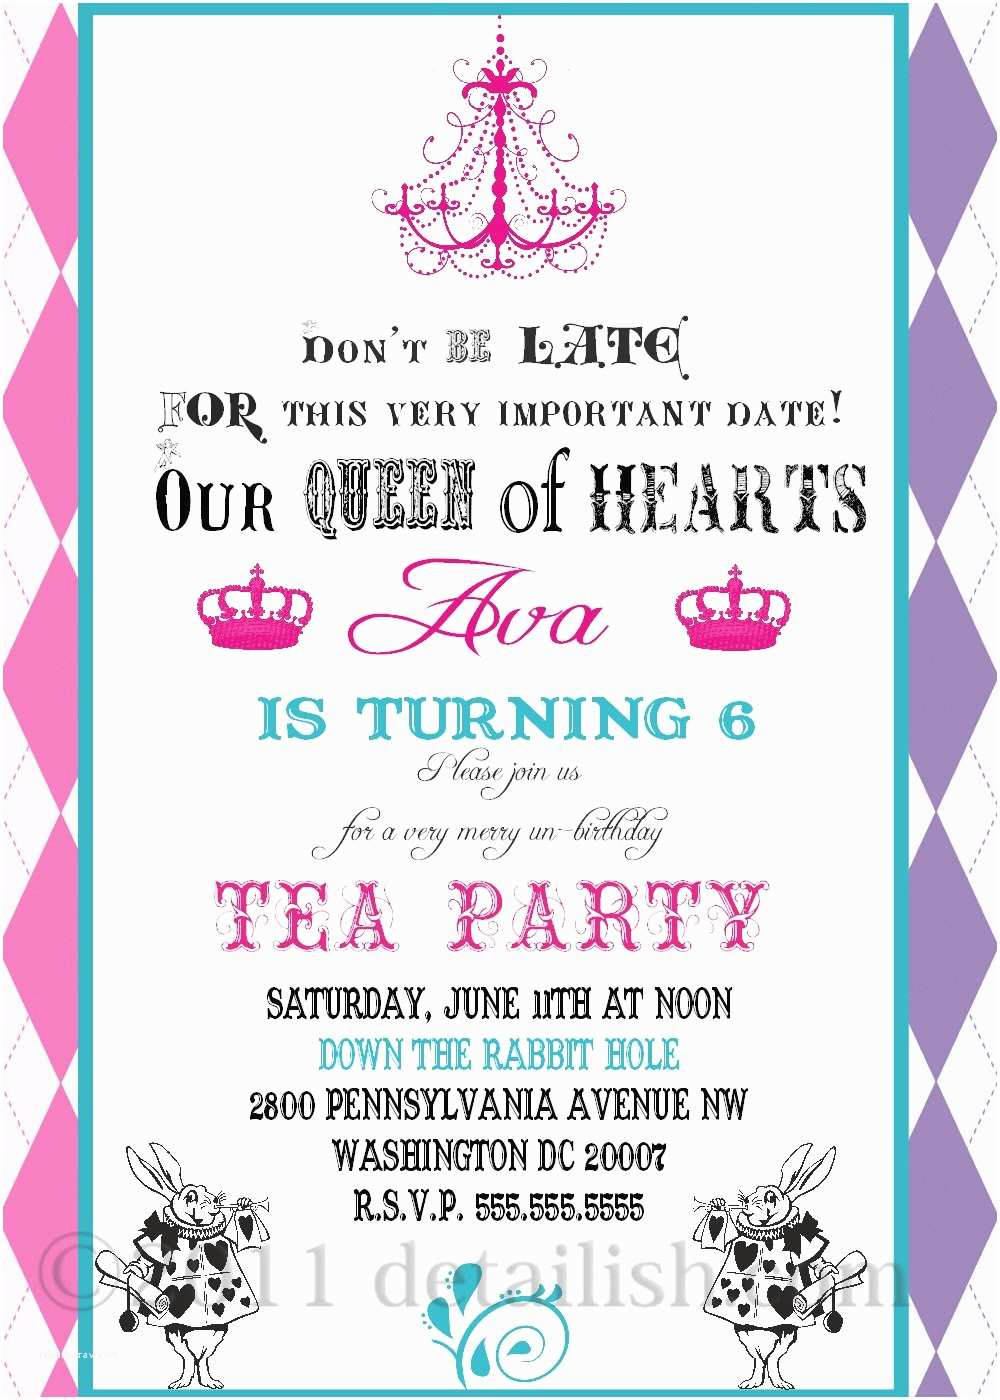 Party Invitation Text Party Invitations Wording